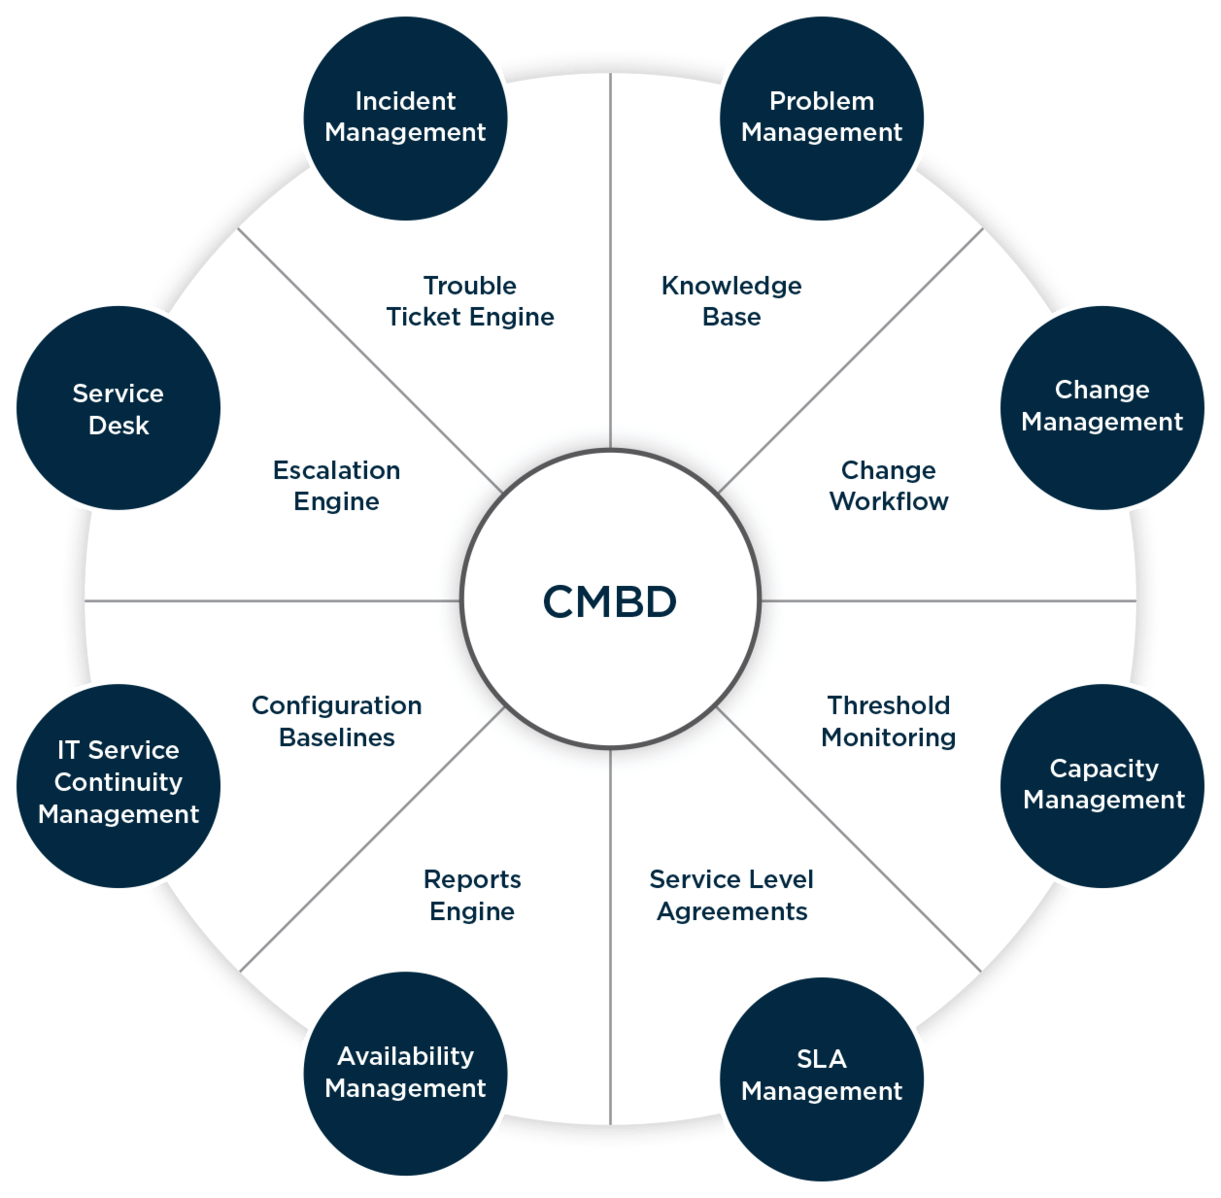 Processes related to CMDB